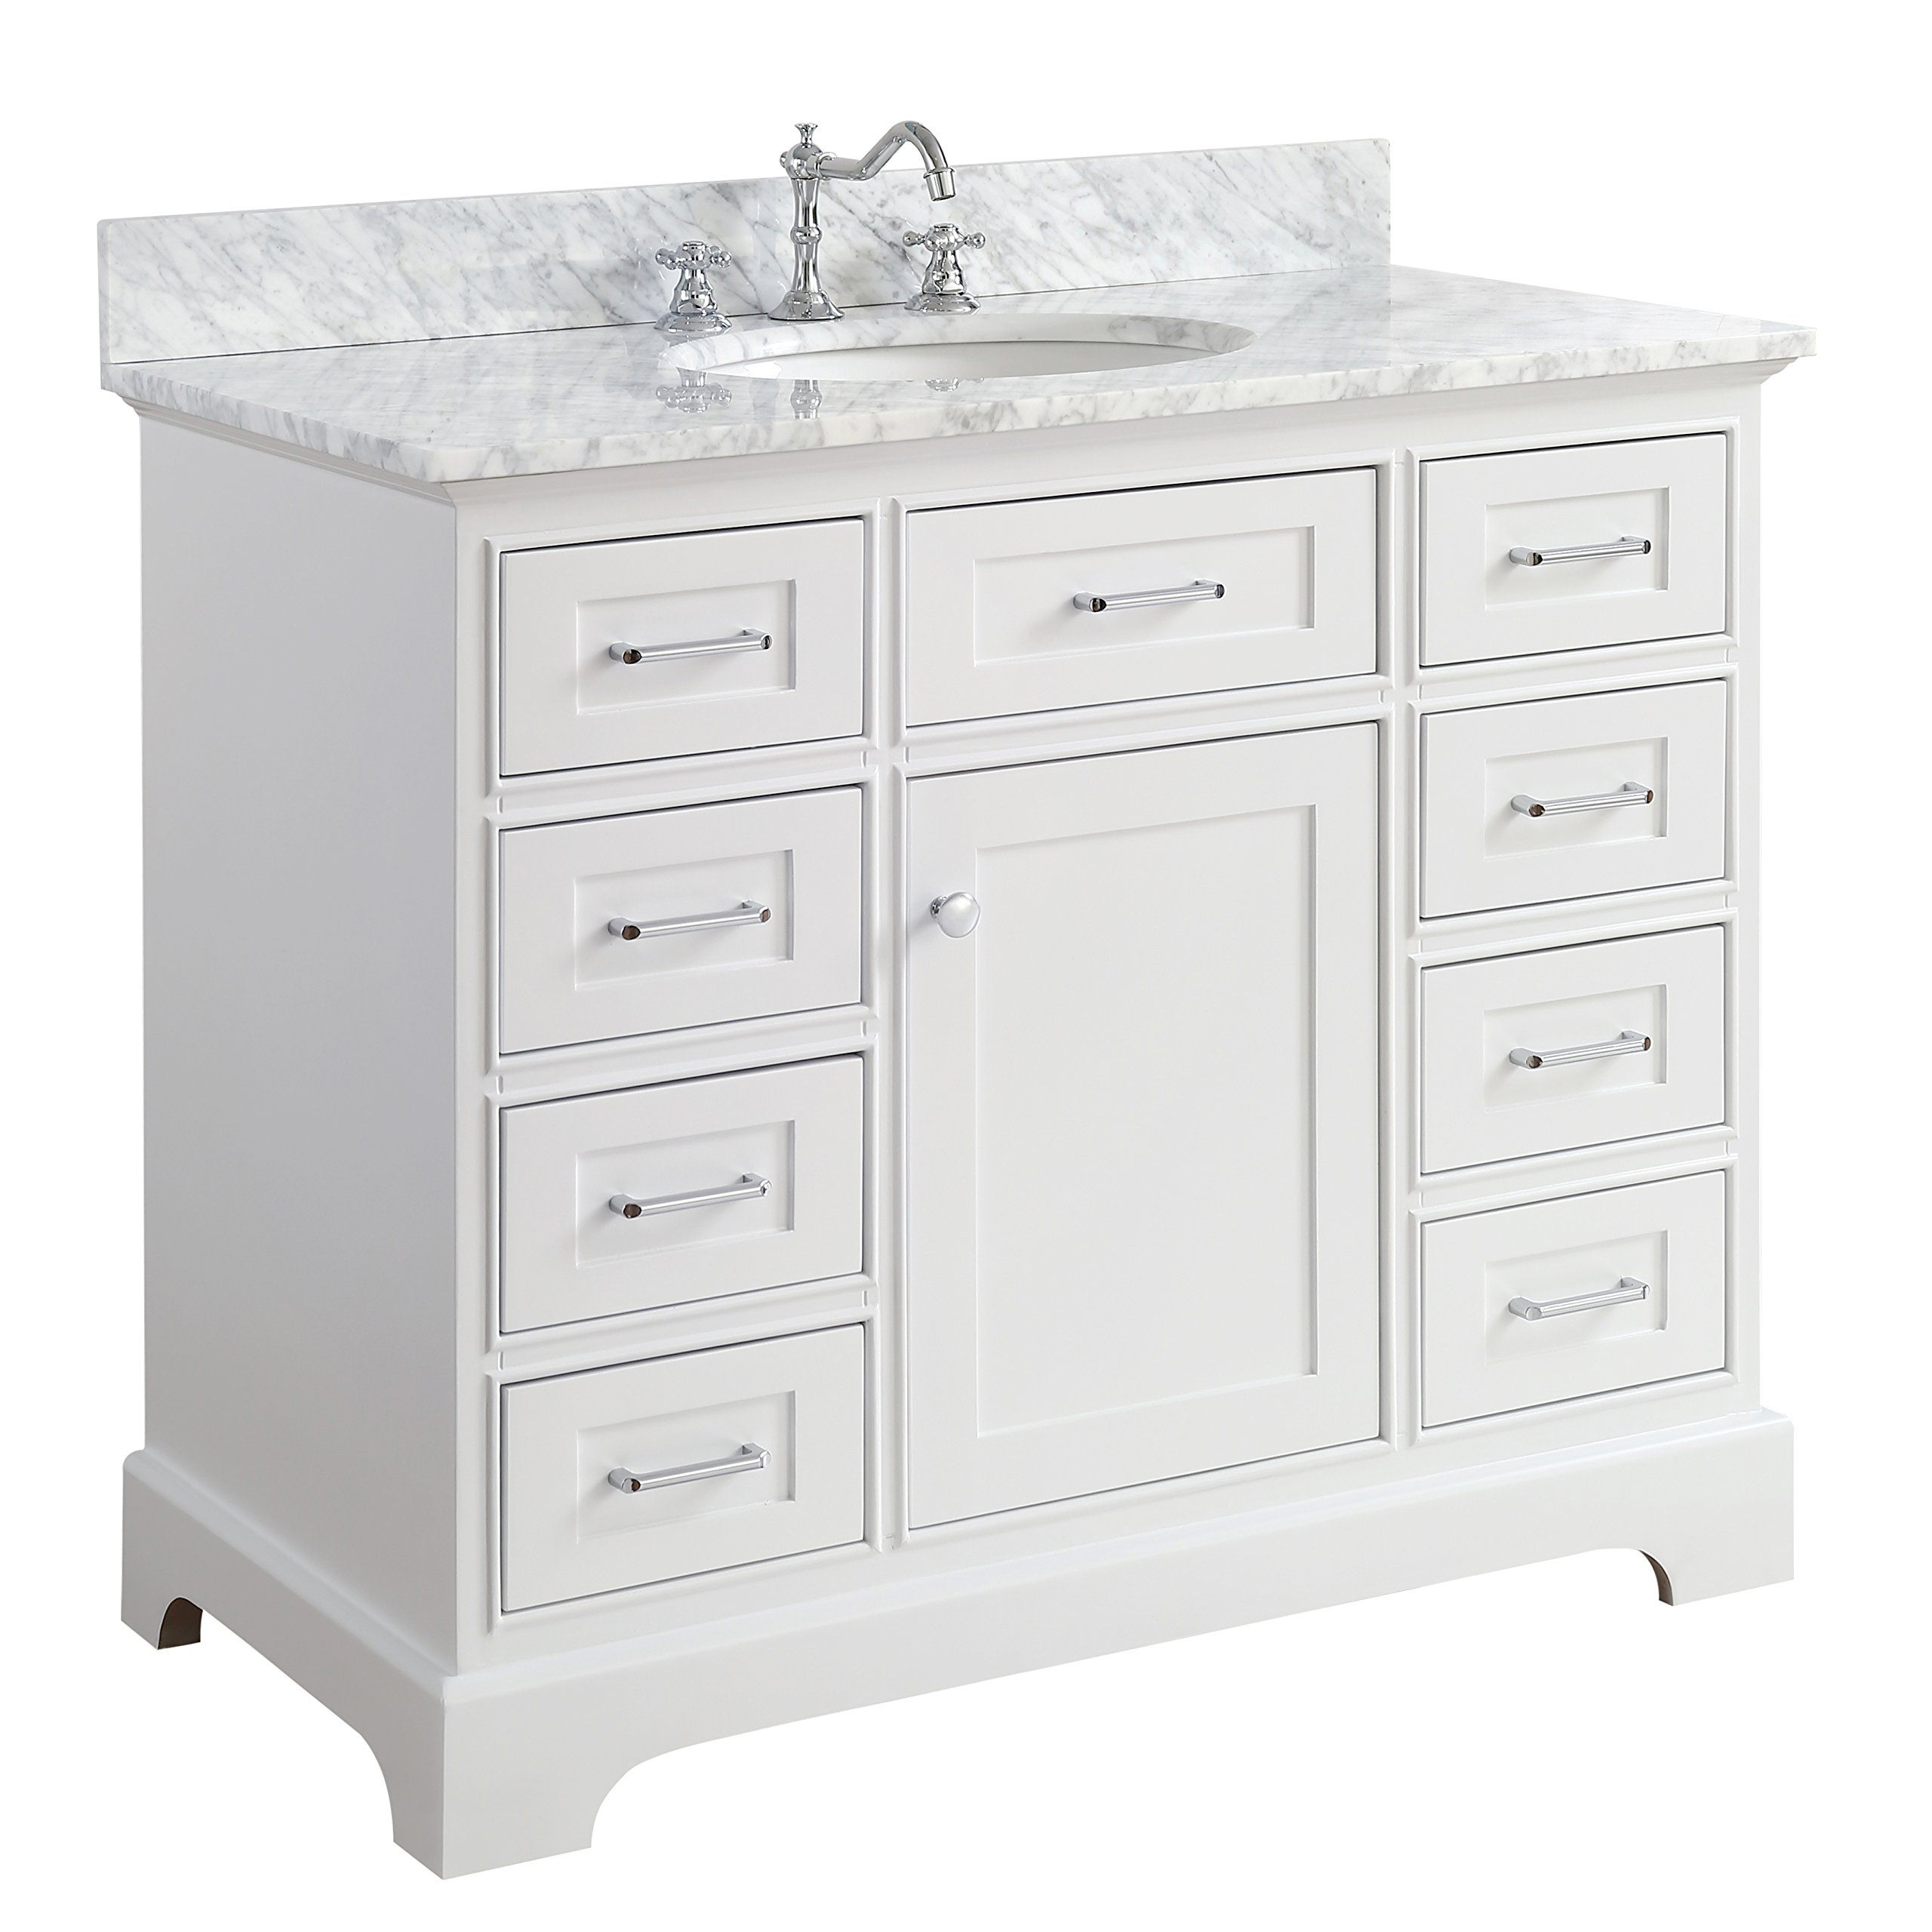 Aria 42 inch Bathroom Vanity Carrara White Includes a White